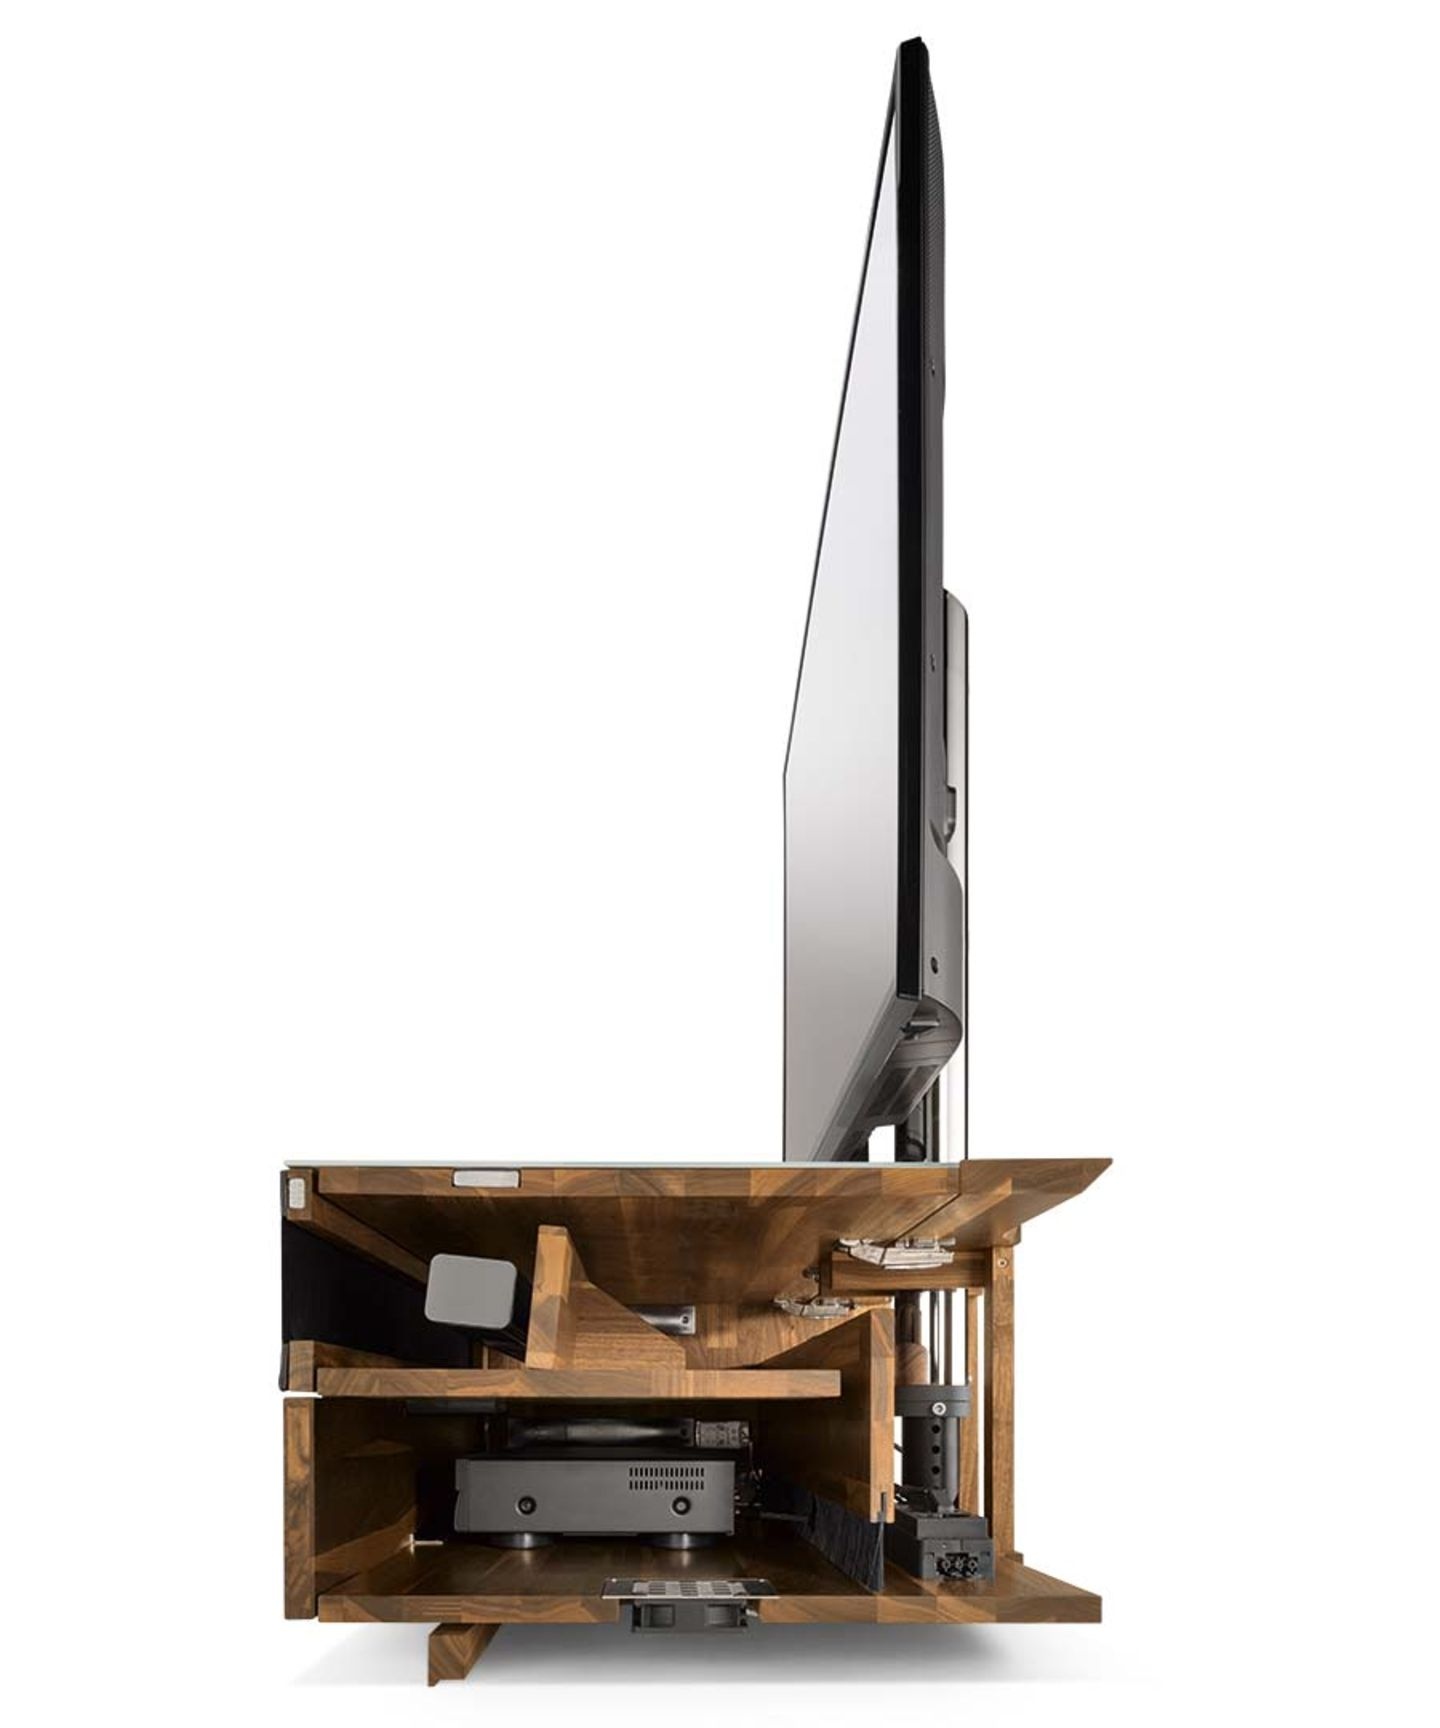 cubus pure Home Entertainment furniture with element sliced open